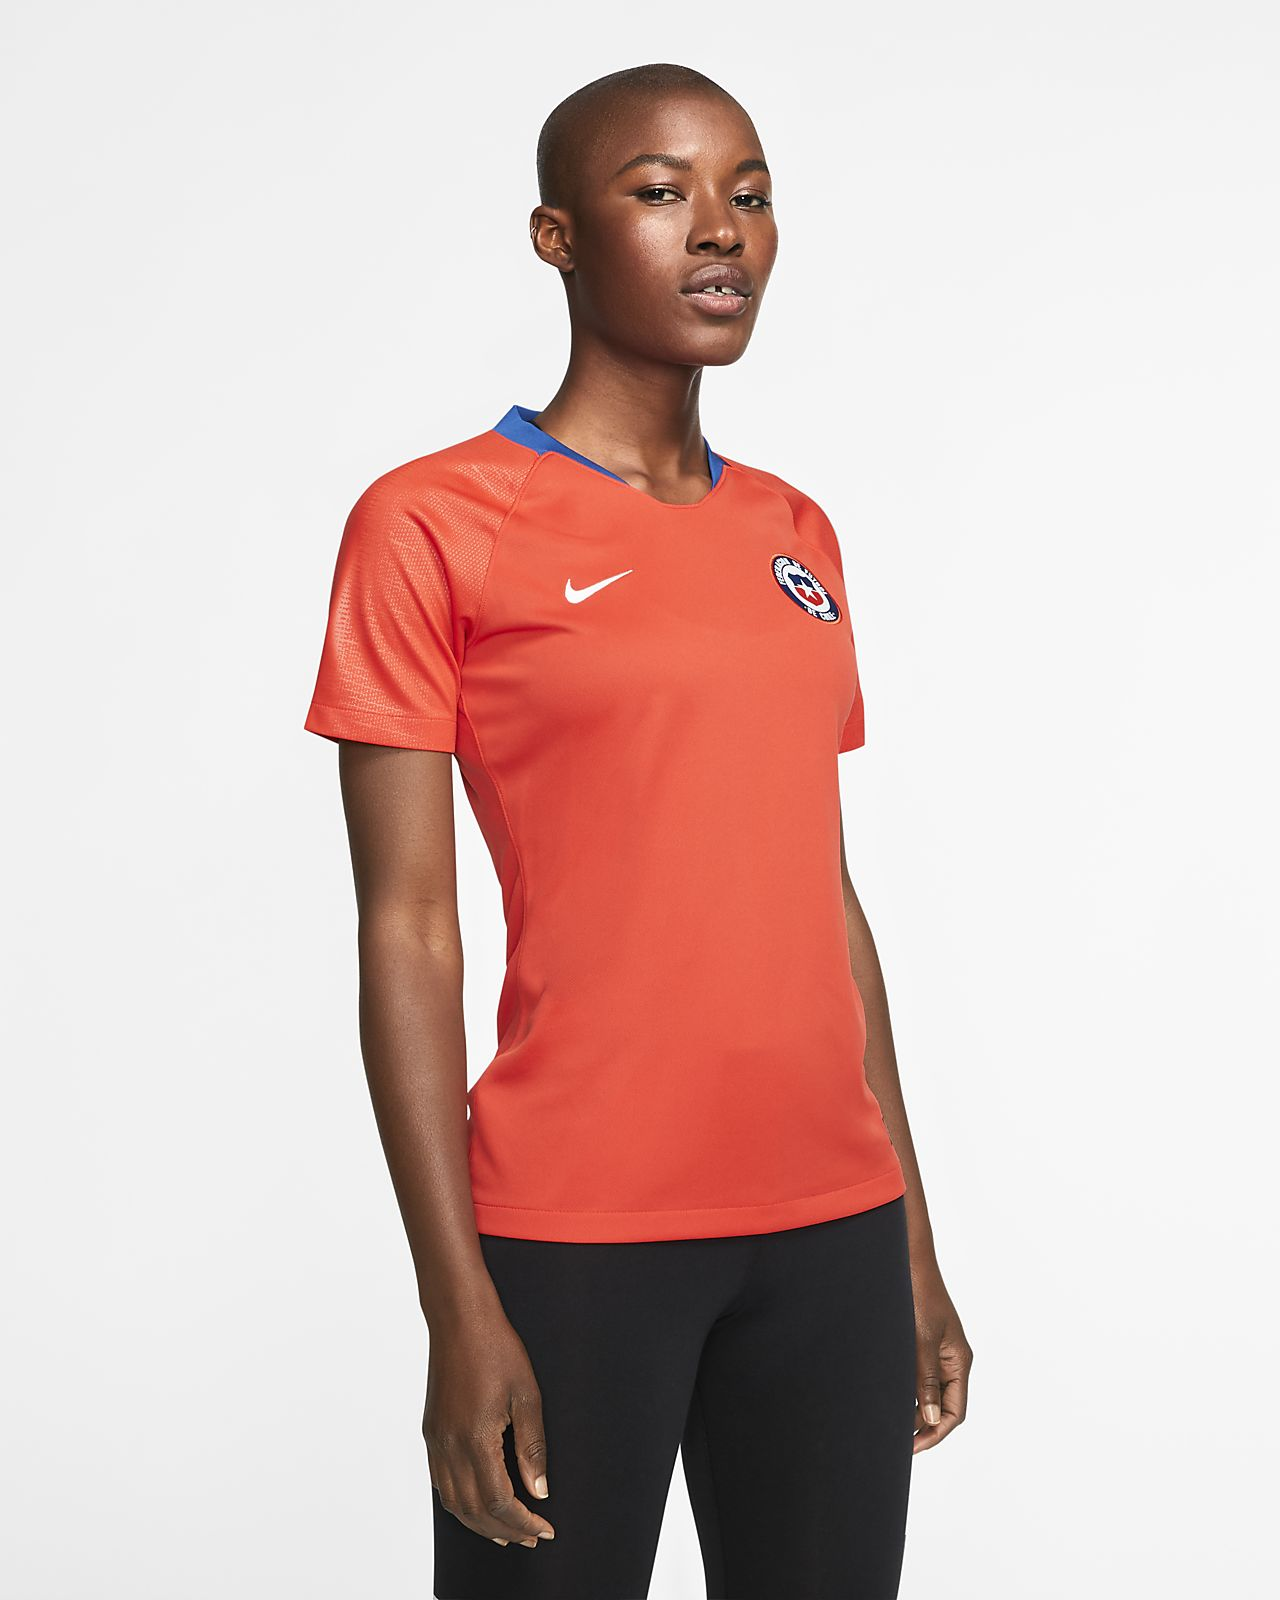 Chile 2019 Stadium Home Voetbalshirt voor dames